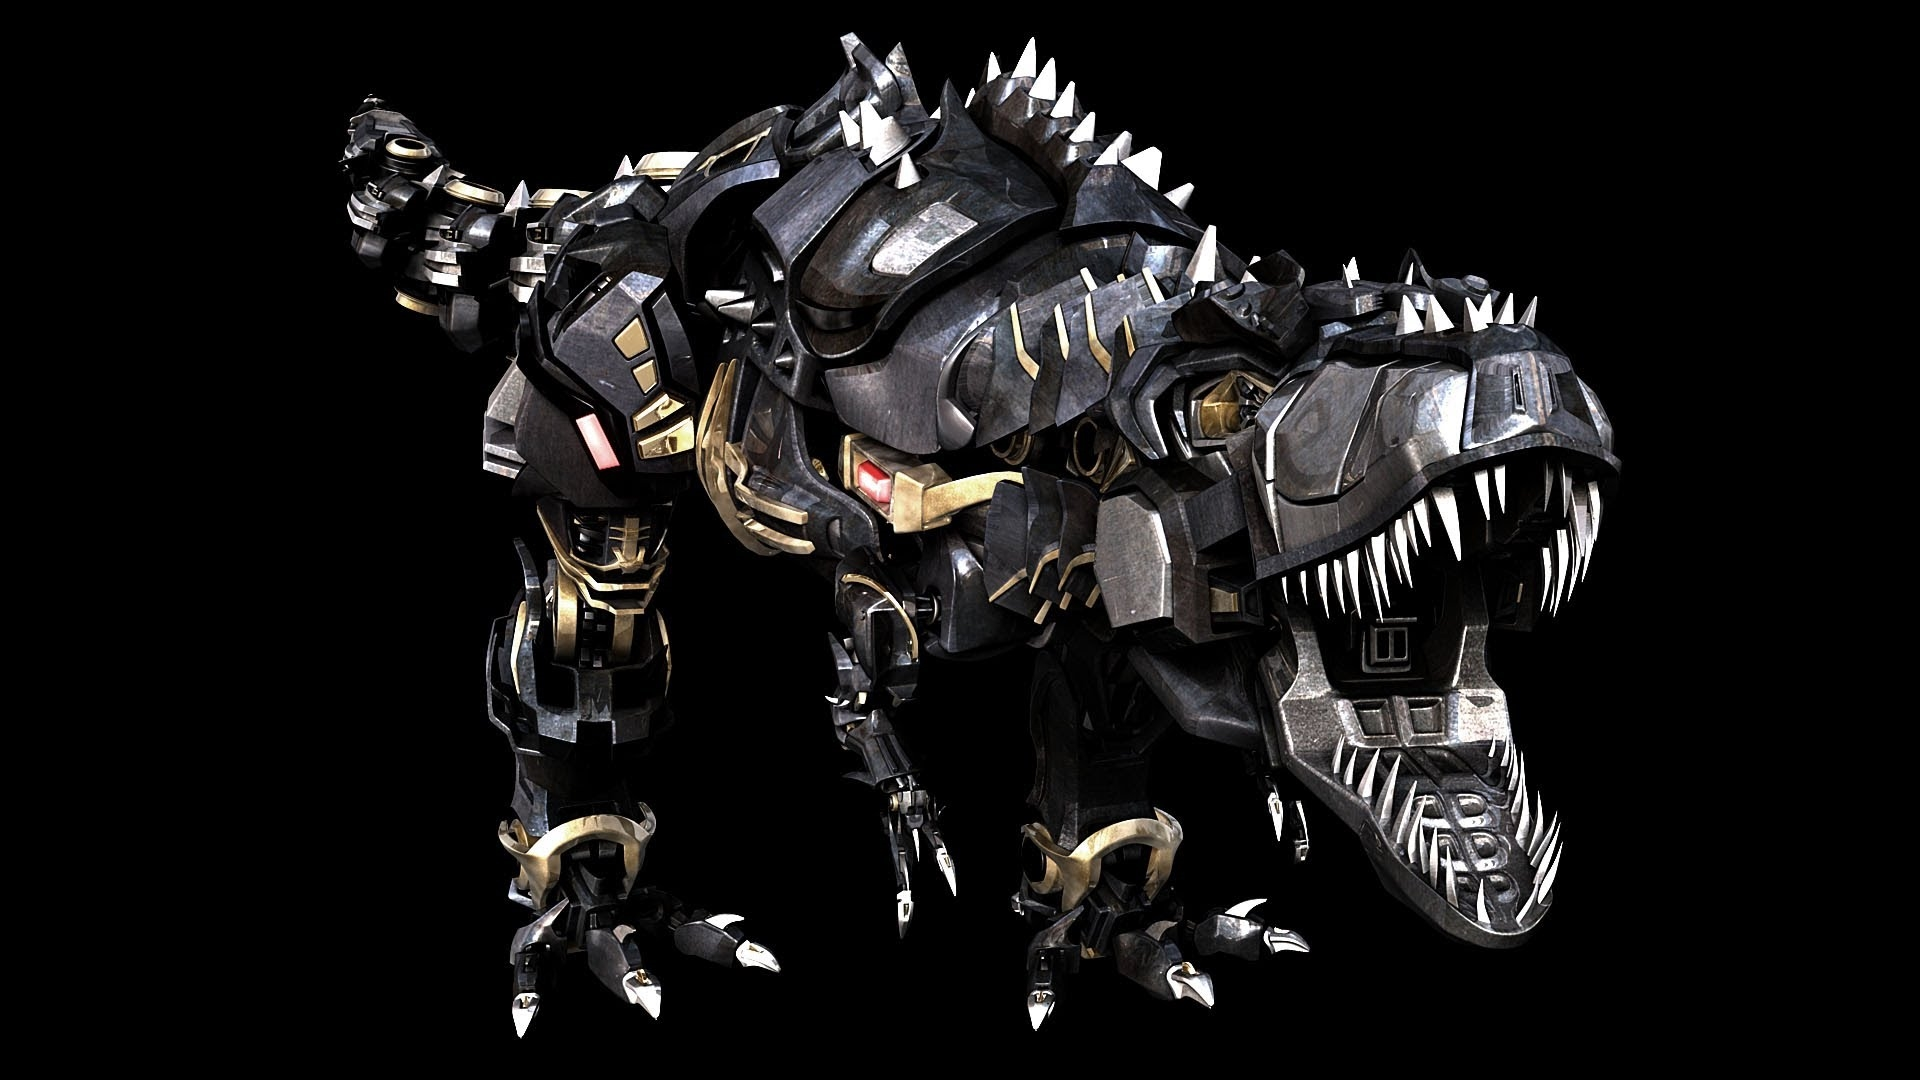 dinobots grimlock free wallpaper hd